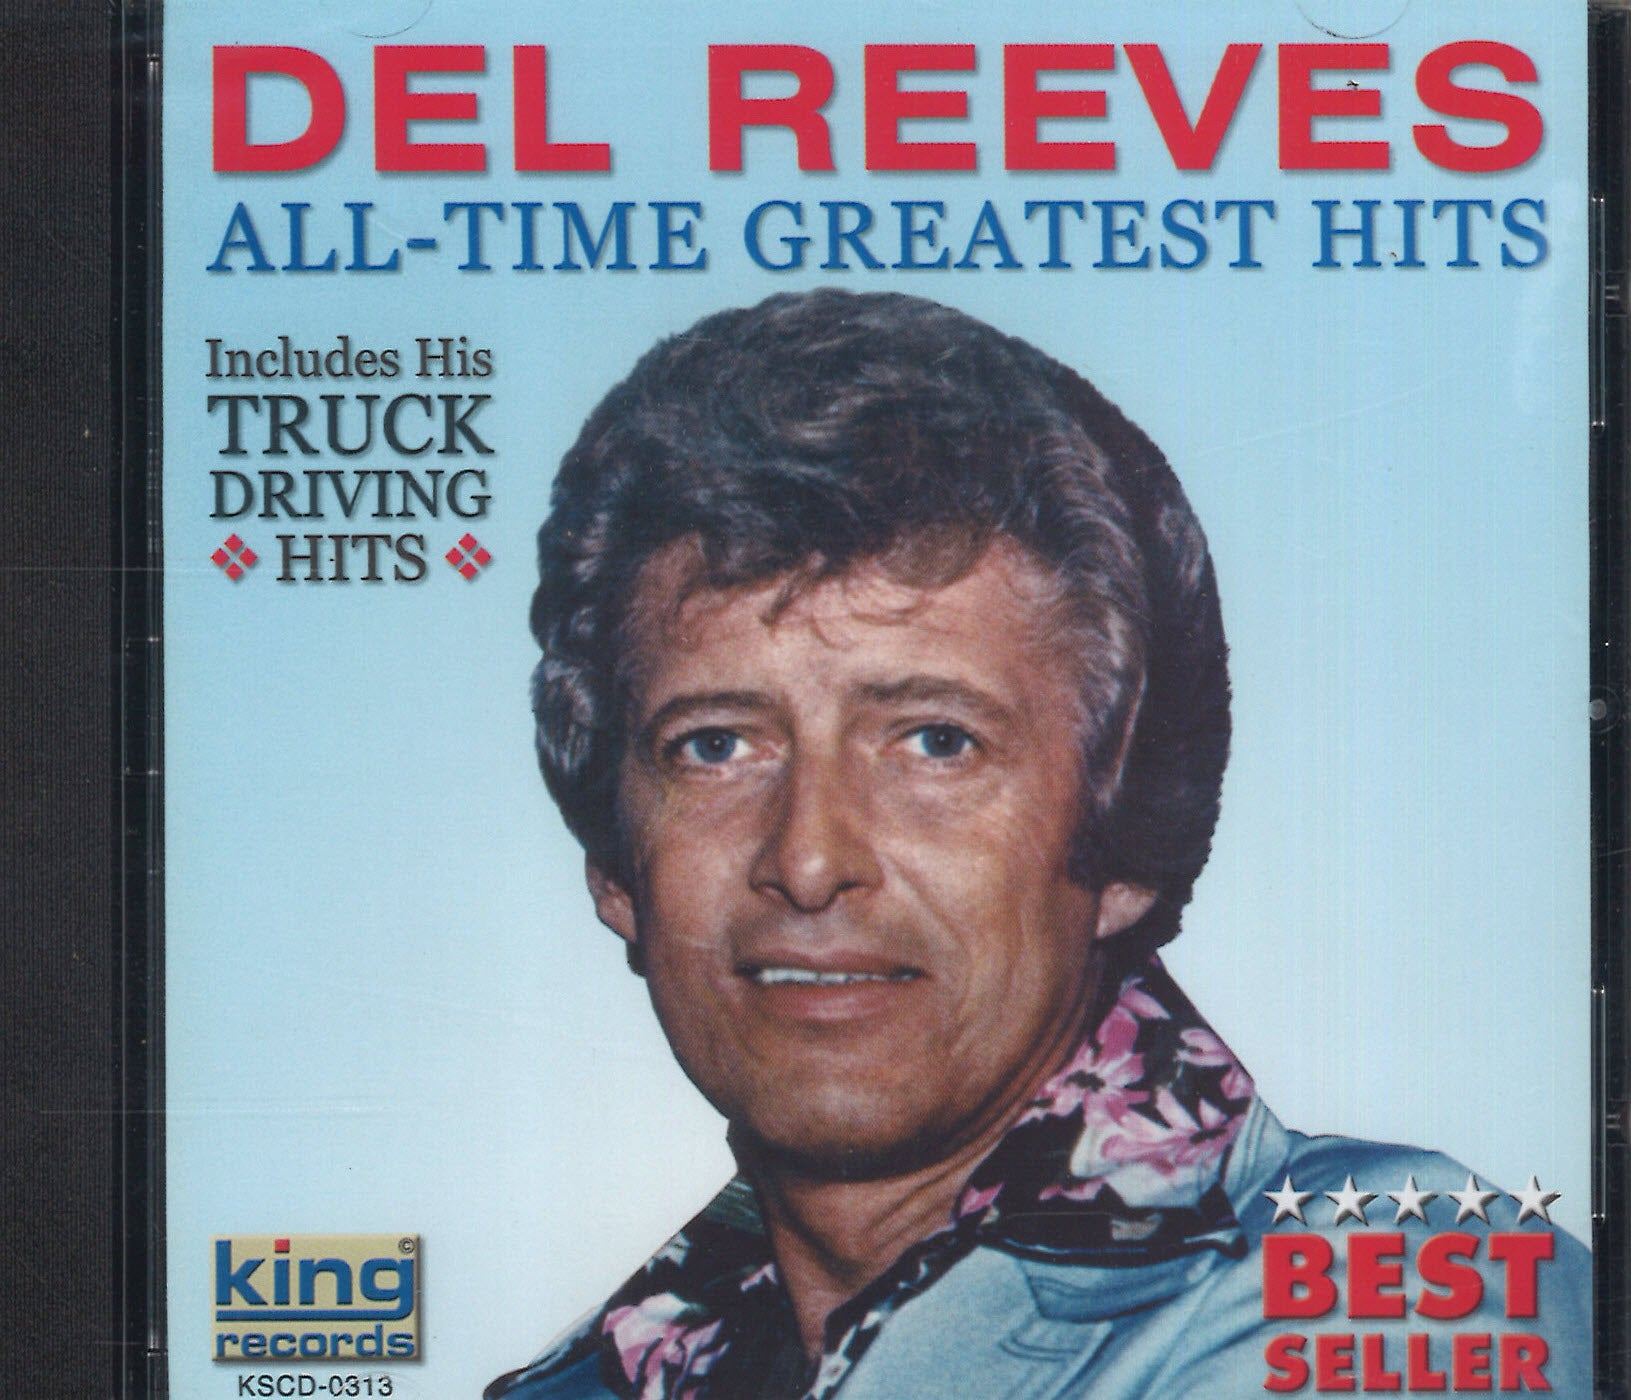 Del Reeves All-Time Greatest Hits